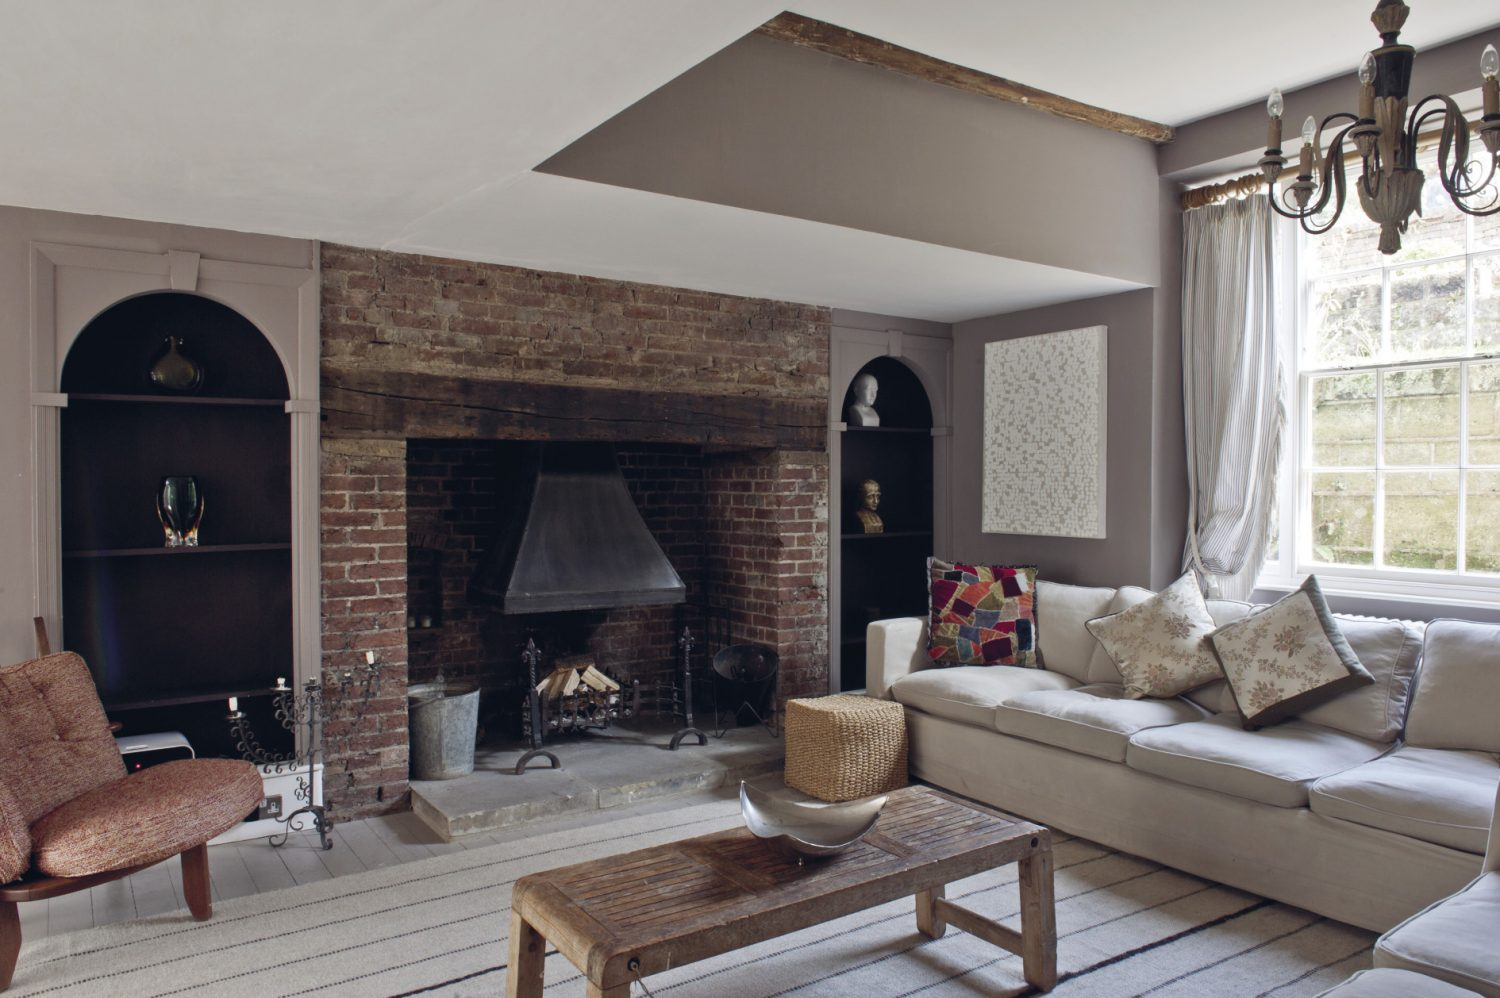 At the other end of the sitting room, two huge comfortable sofas are placed around an original inglenook where log fires burn in the winter months